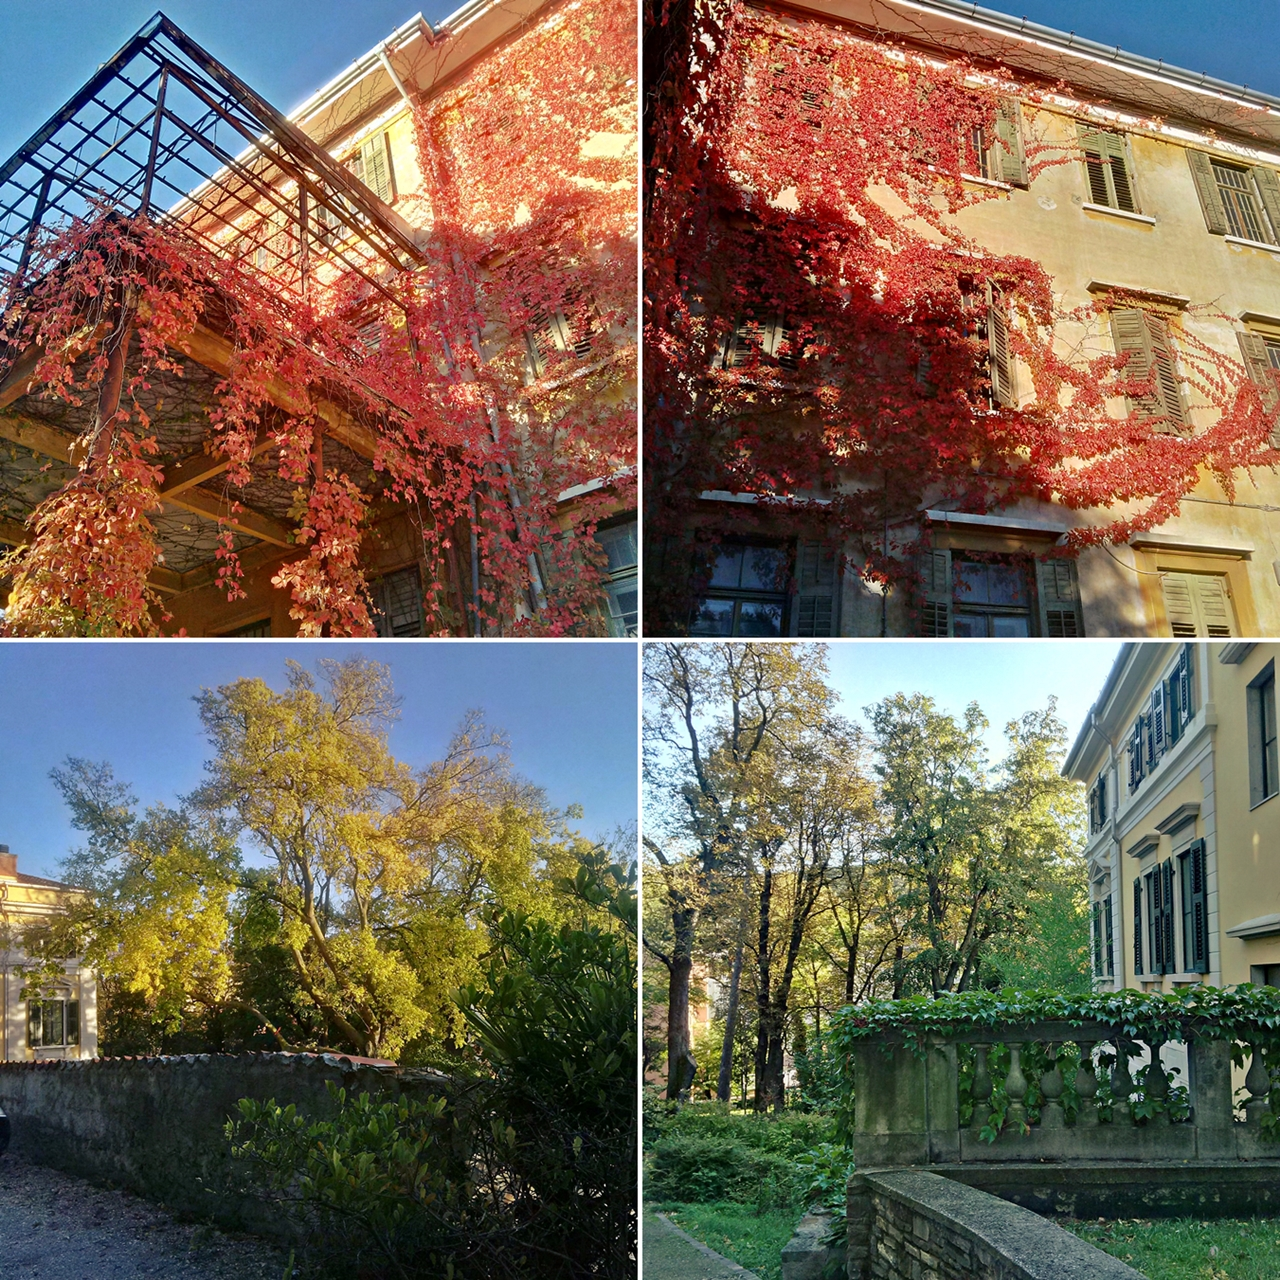 Autunno collage: edifici © leeliah99.altervista.org